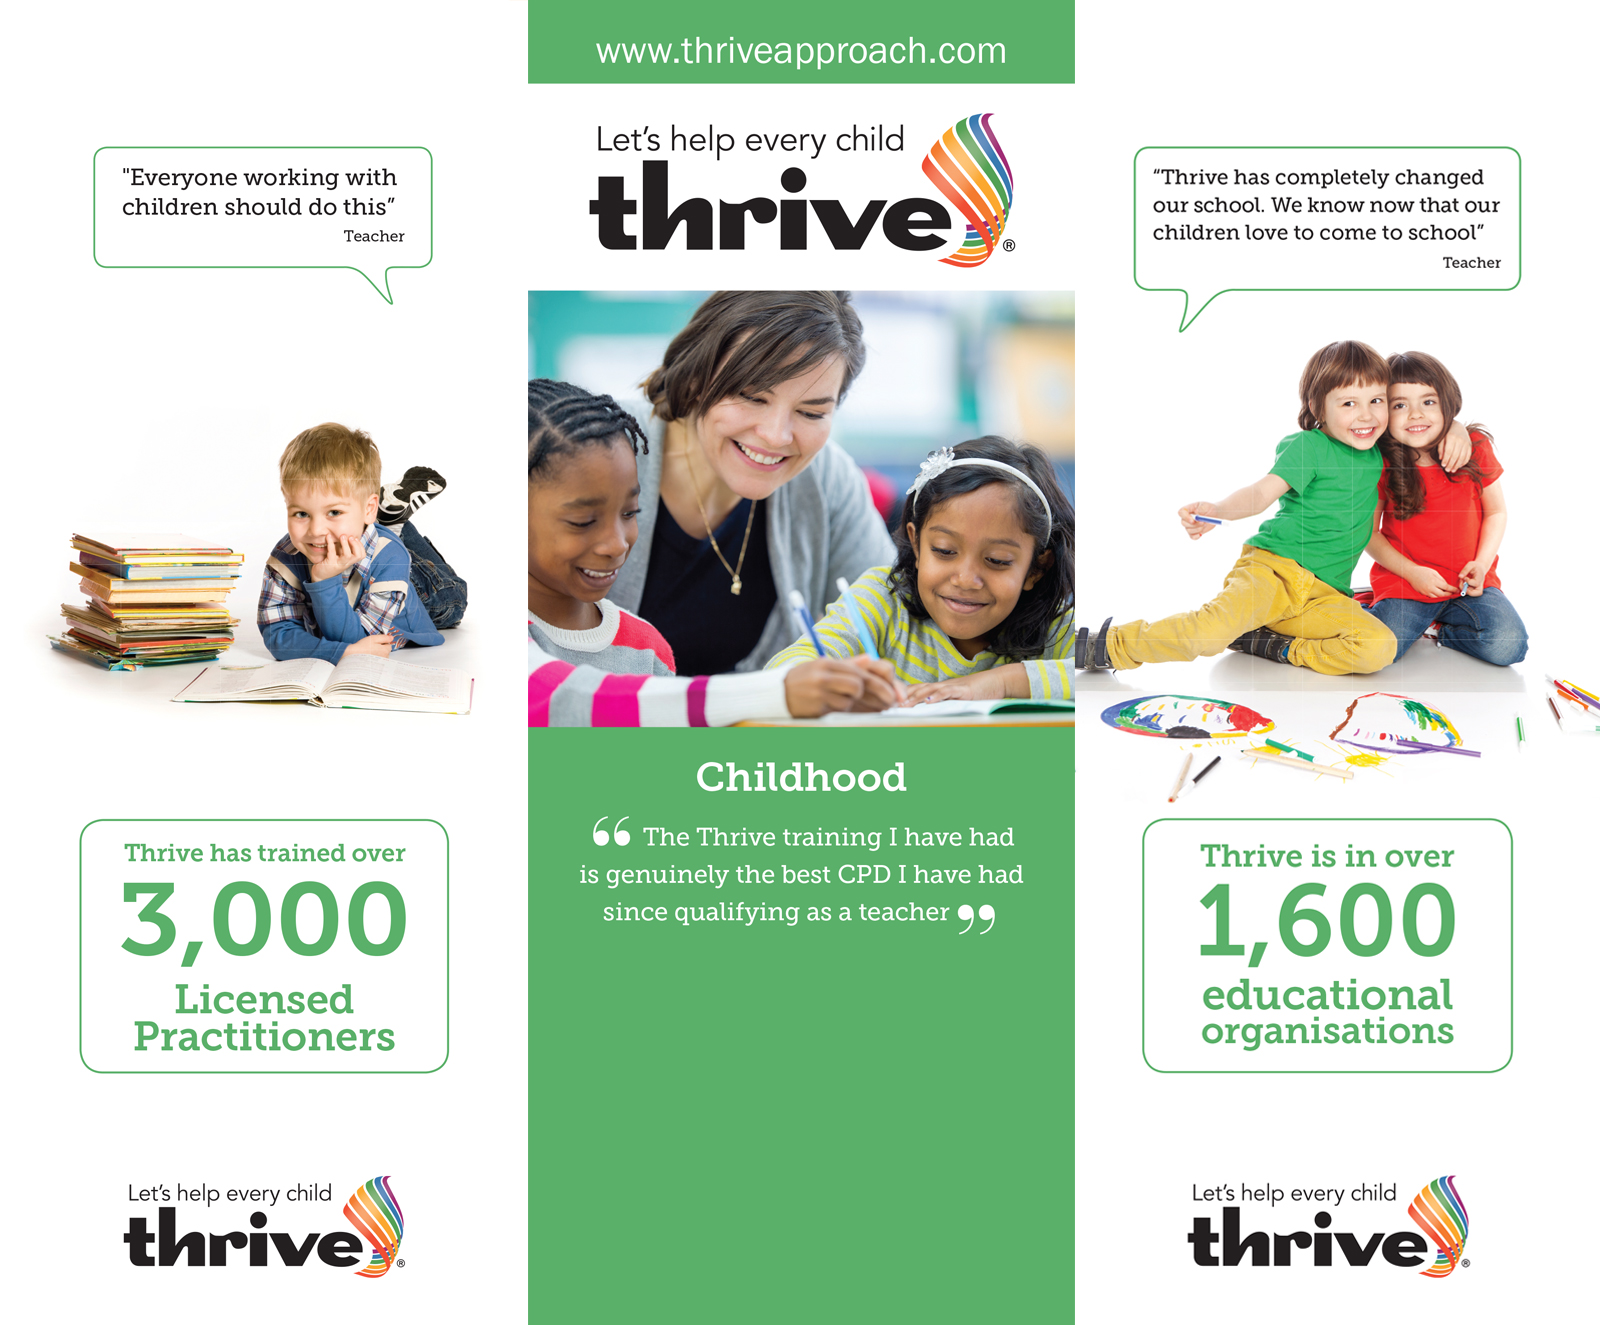 Thrive Exhibition Stands design